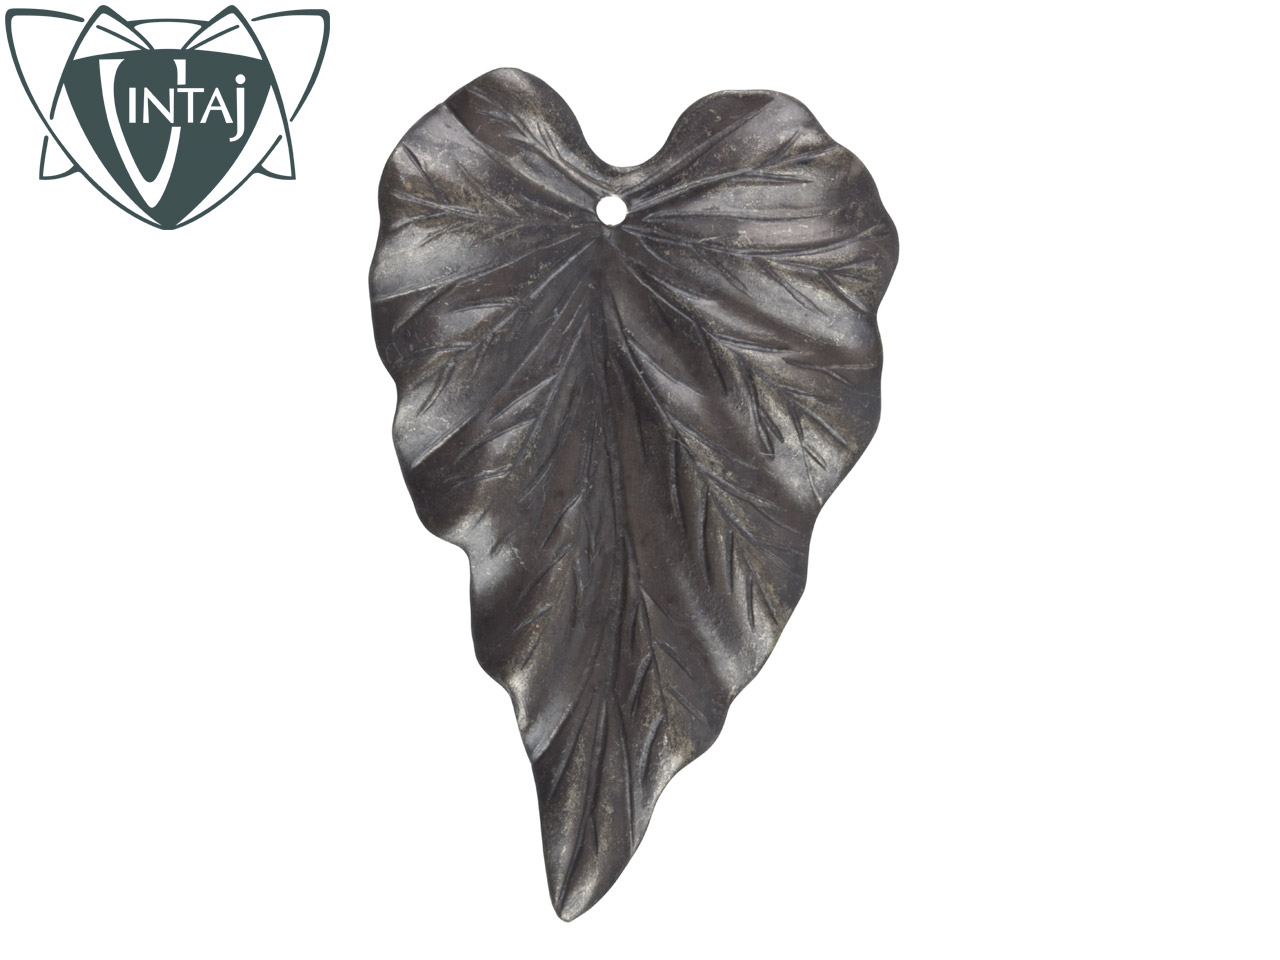 Vintaj Brass Woodland Leaf